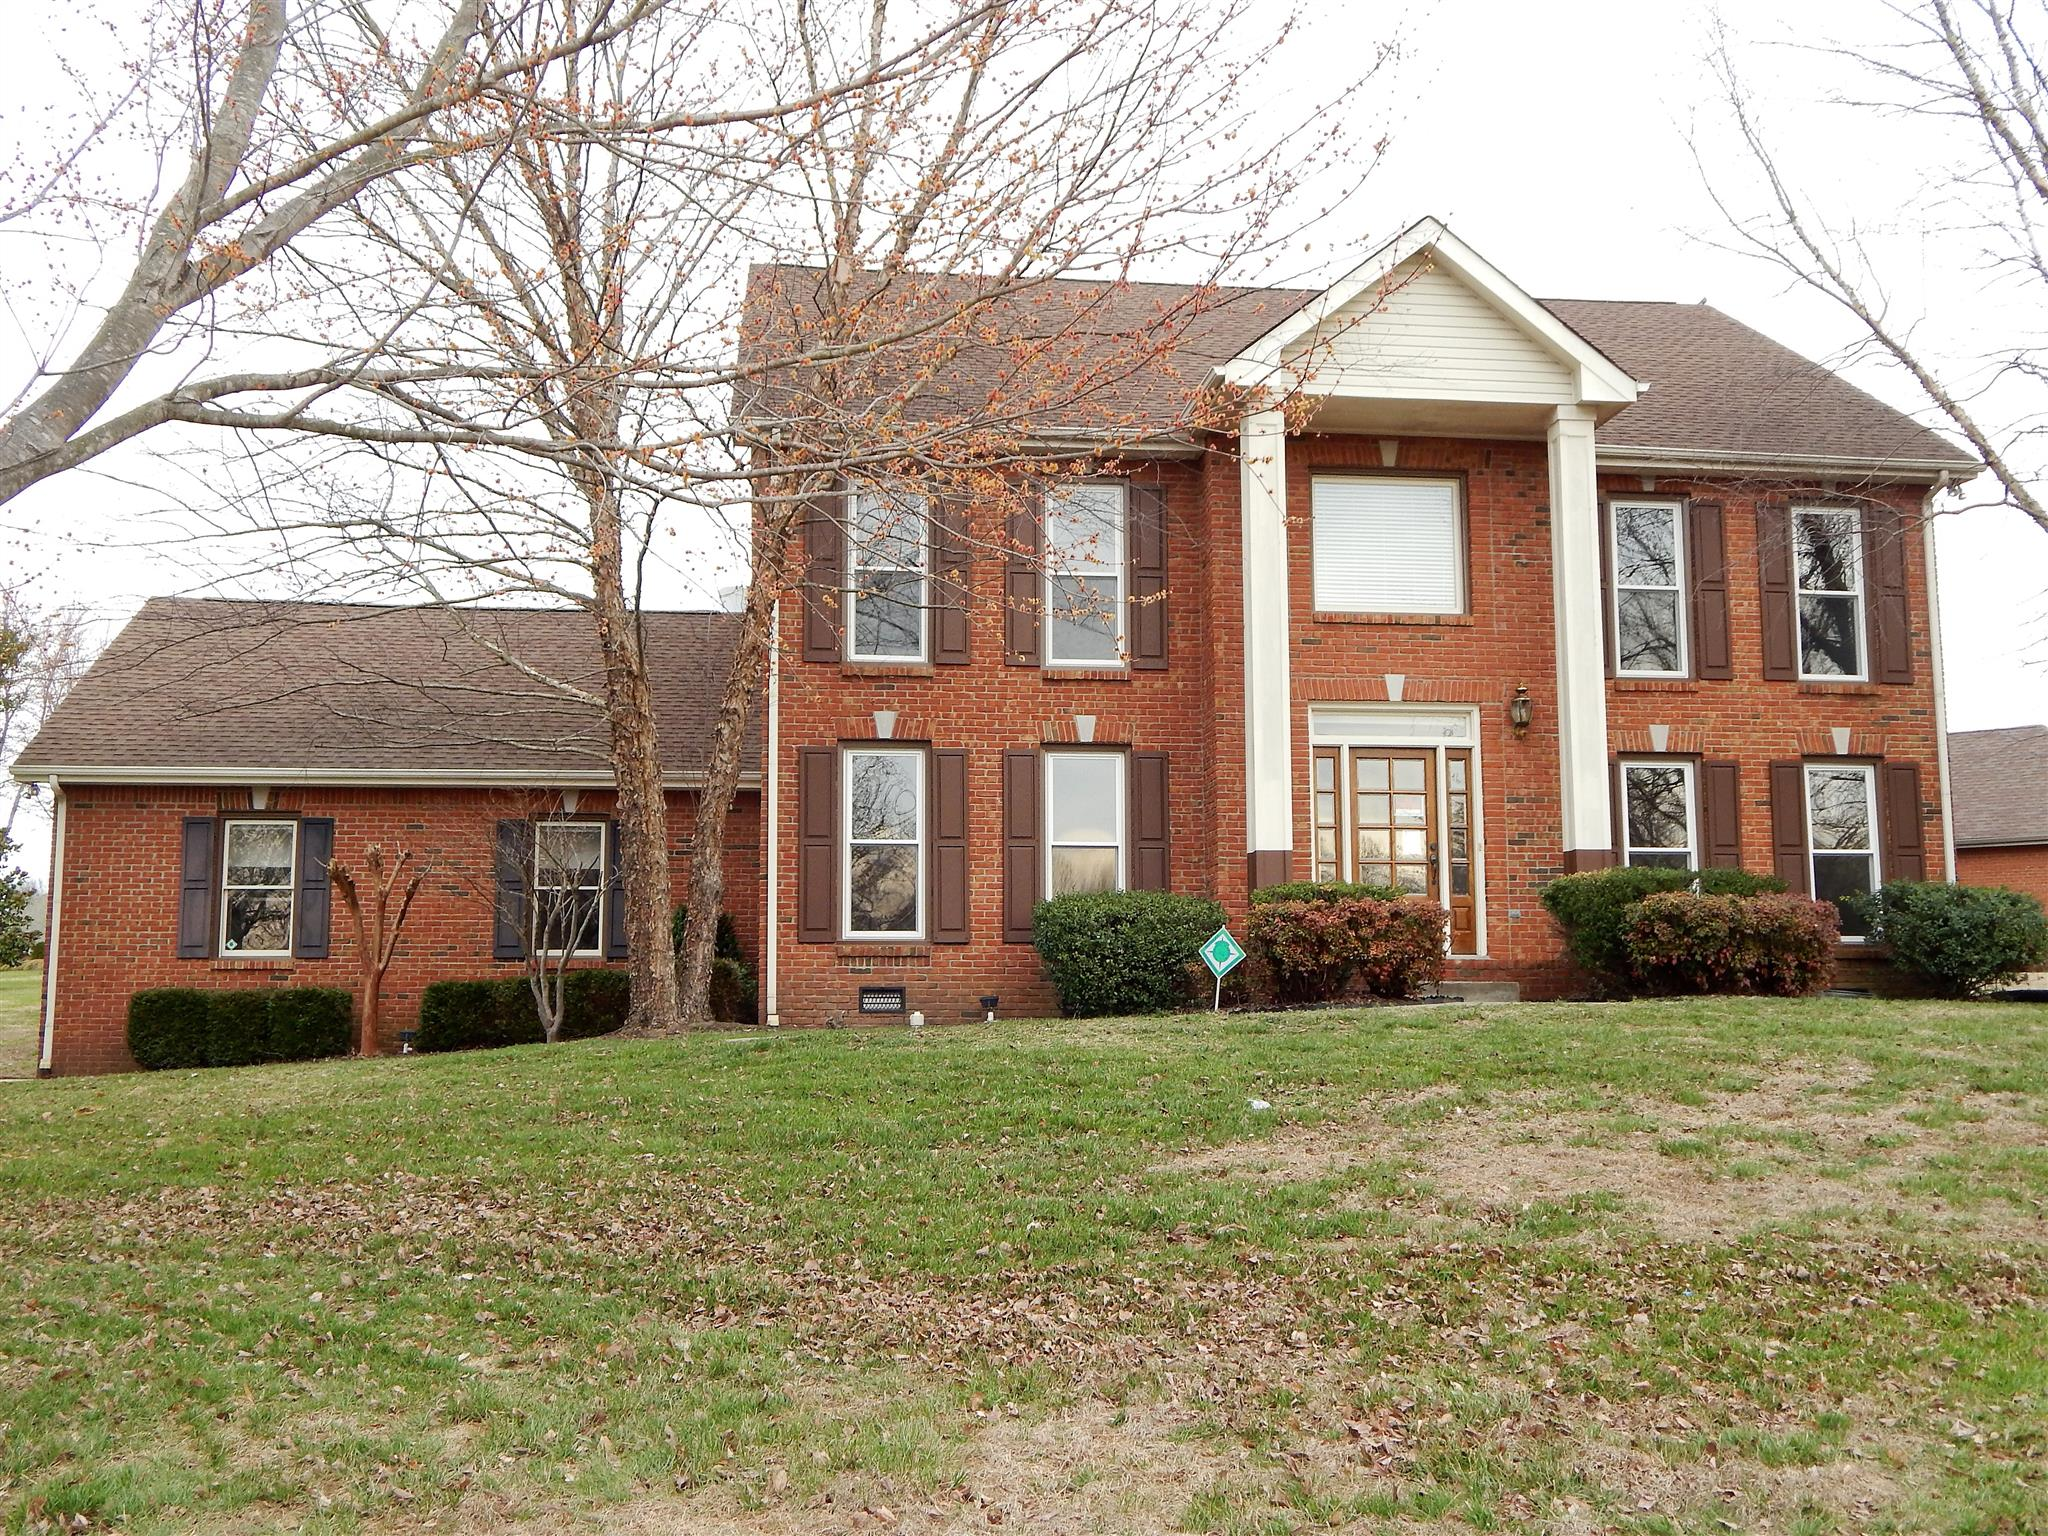 211 AVIGNON WAY, Clarksville in Montgomery County County, TN 37043 Home for Sale